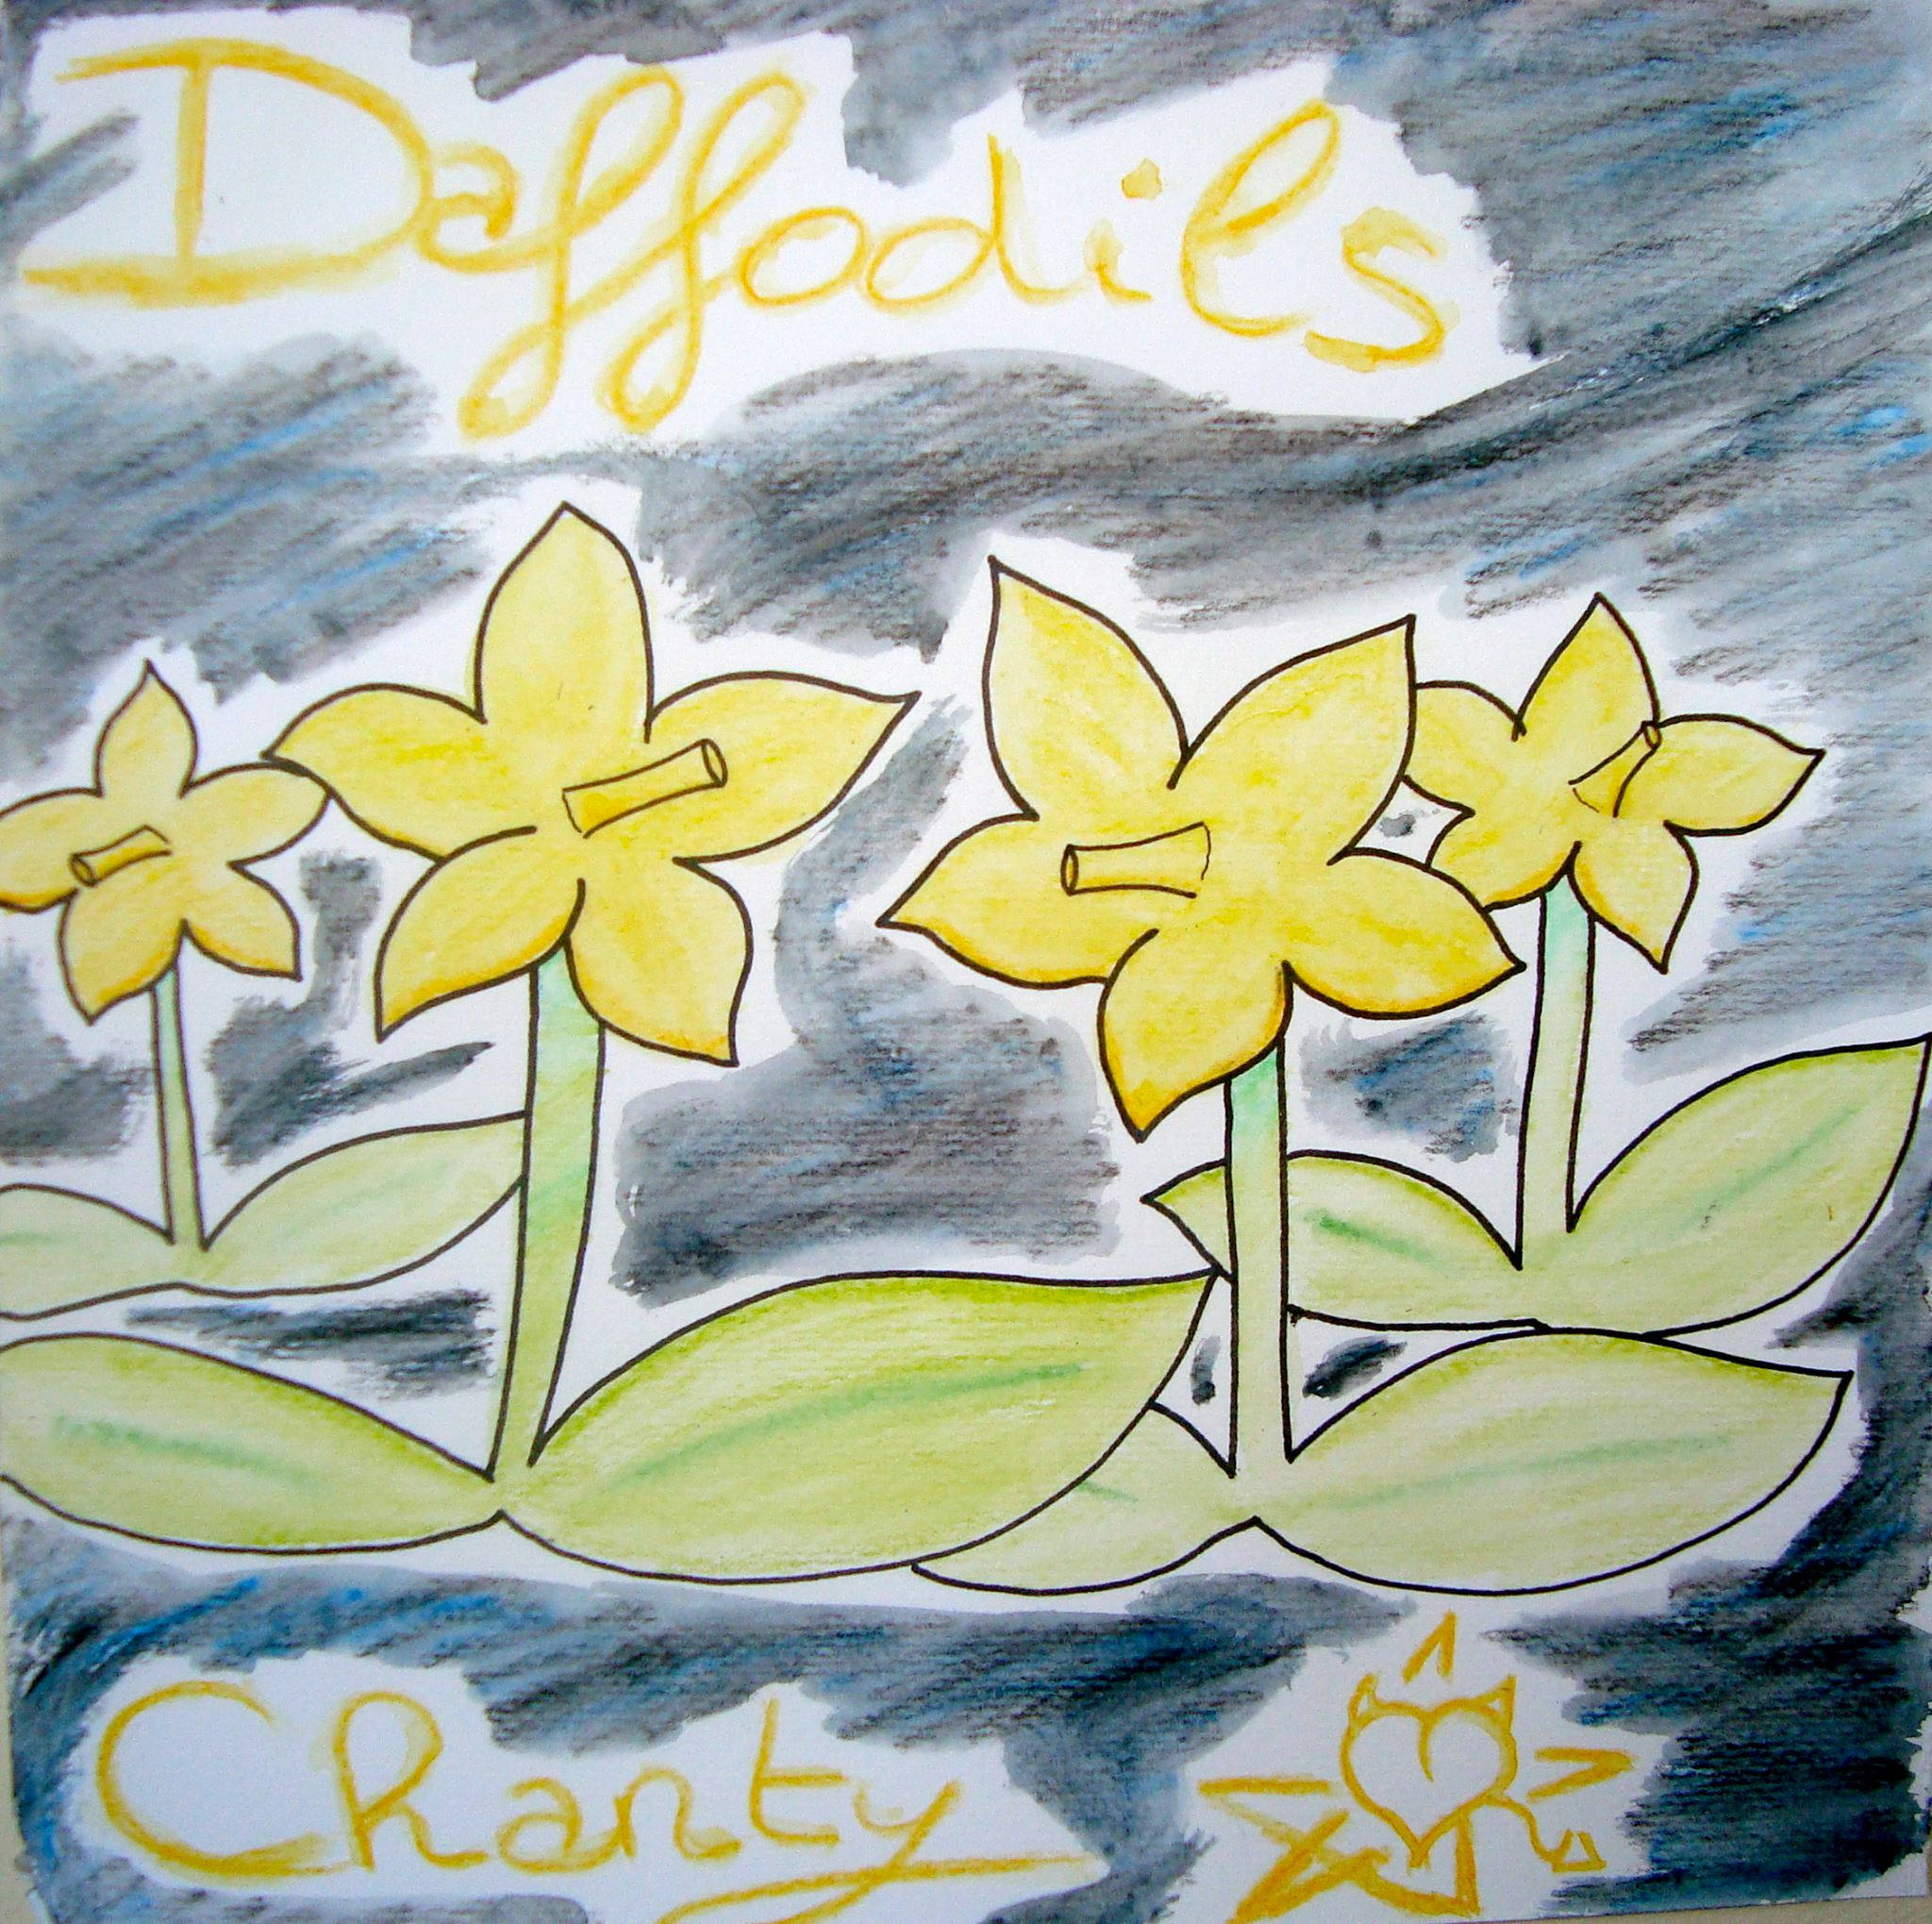 DAFFODILS - Choosing her brother, MINKY TRES-VAIN, to perform on and produce her debut EP, CHANTY TRES-VAIN also hired The SIBERIAN ALIEN in order to complete the line-up for her studio-backing band.